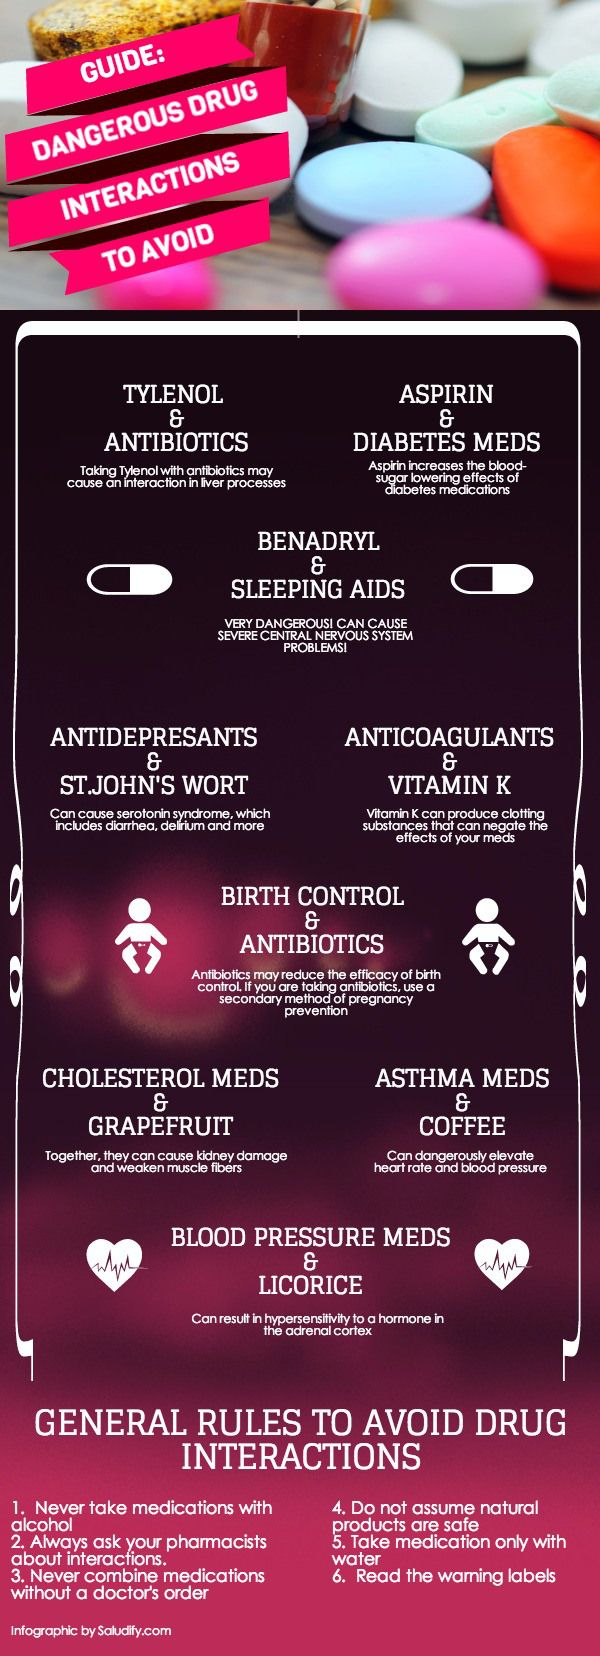 • DANGEROUS DRUG INTERACTIONS TO AVOID • 1) tylenol & antibiotics. 2) aspirin & diabetes medications. 3) benadryl & sleeping aids. 4) antidepressants & st. john's wort. 5) blood pressure medication & licorice. 6) statins & grapefruit juice. 7) birth control pills & antibiotics. 8) asthma medications & coffee. 9) anticoagulants & vitamin k.